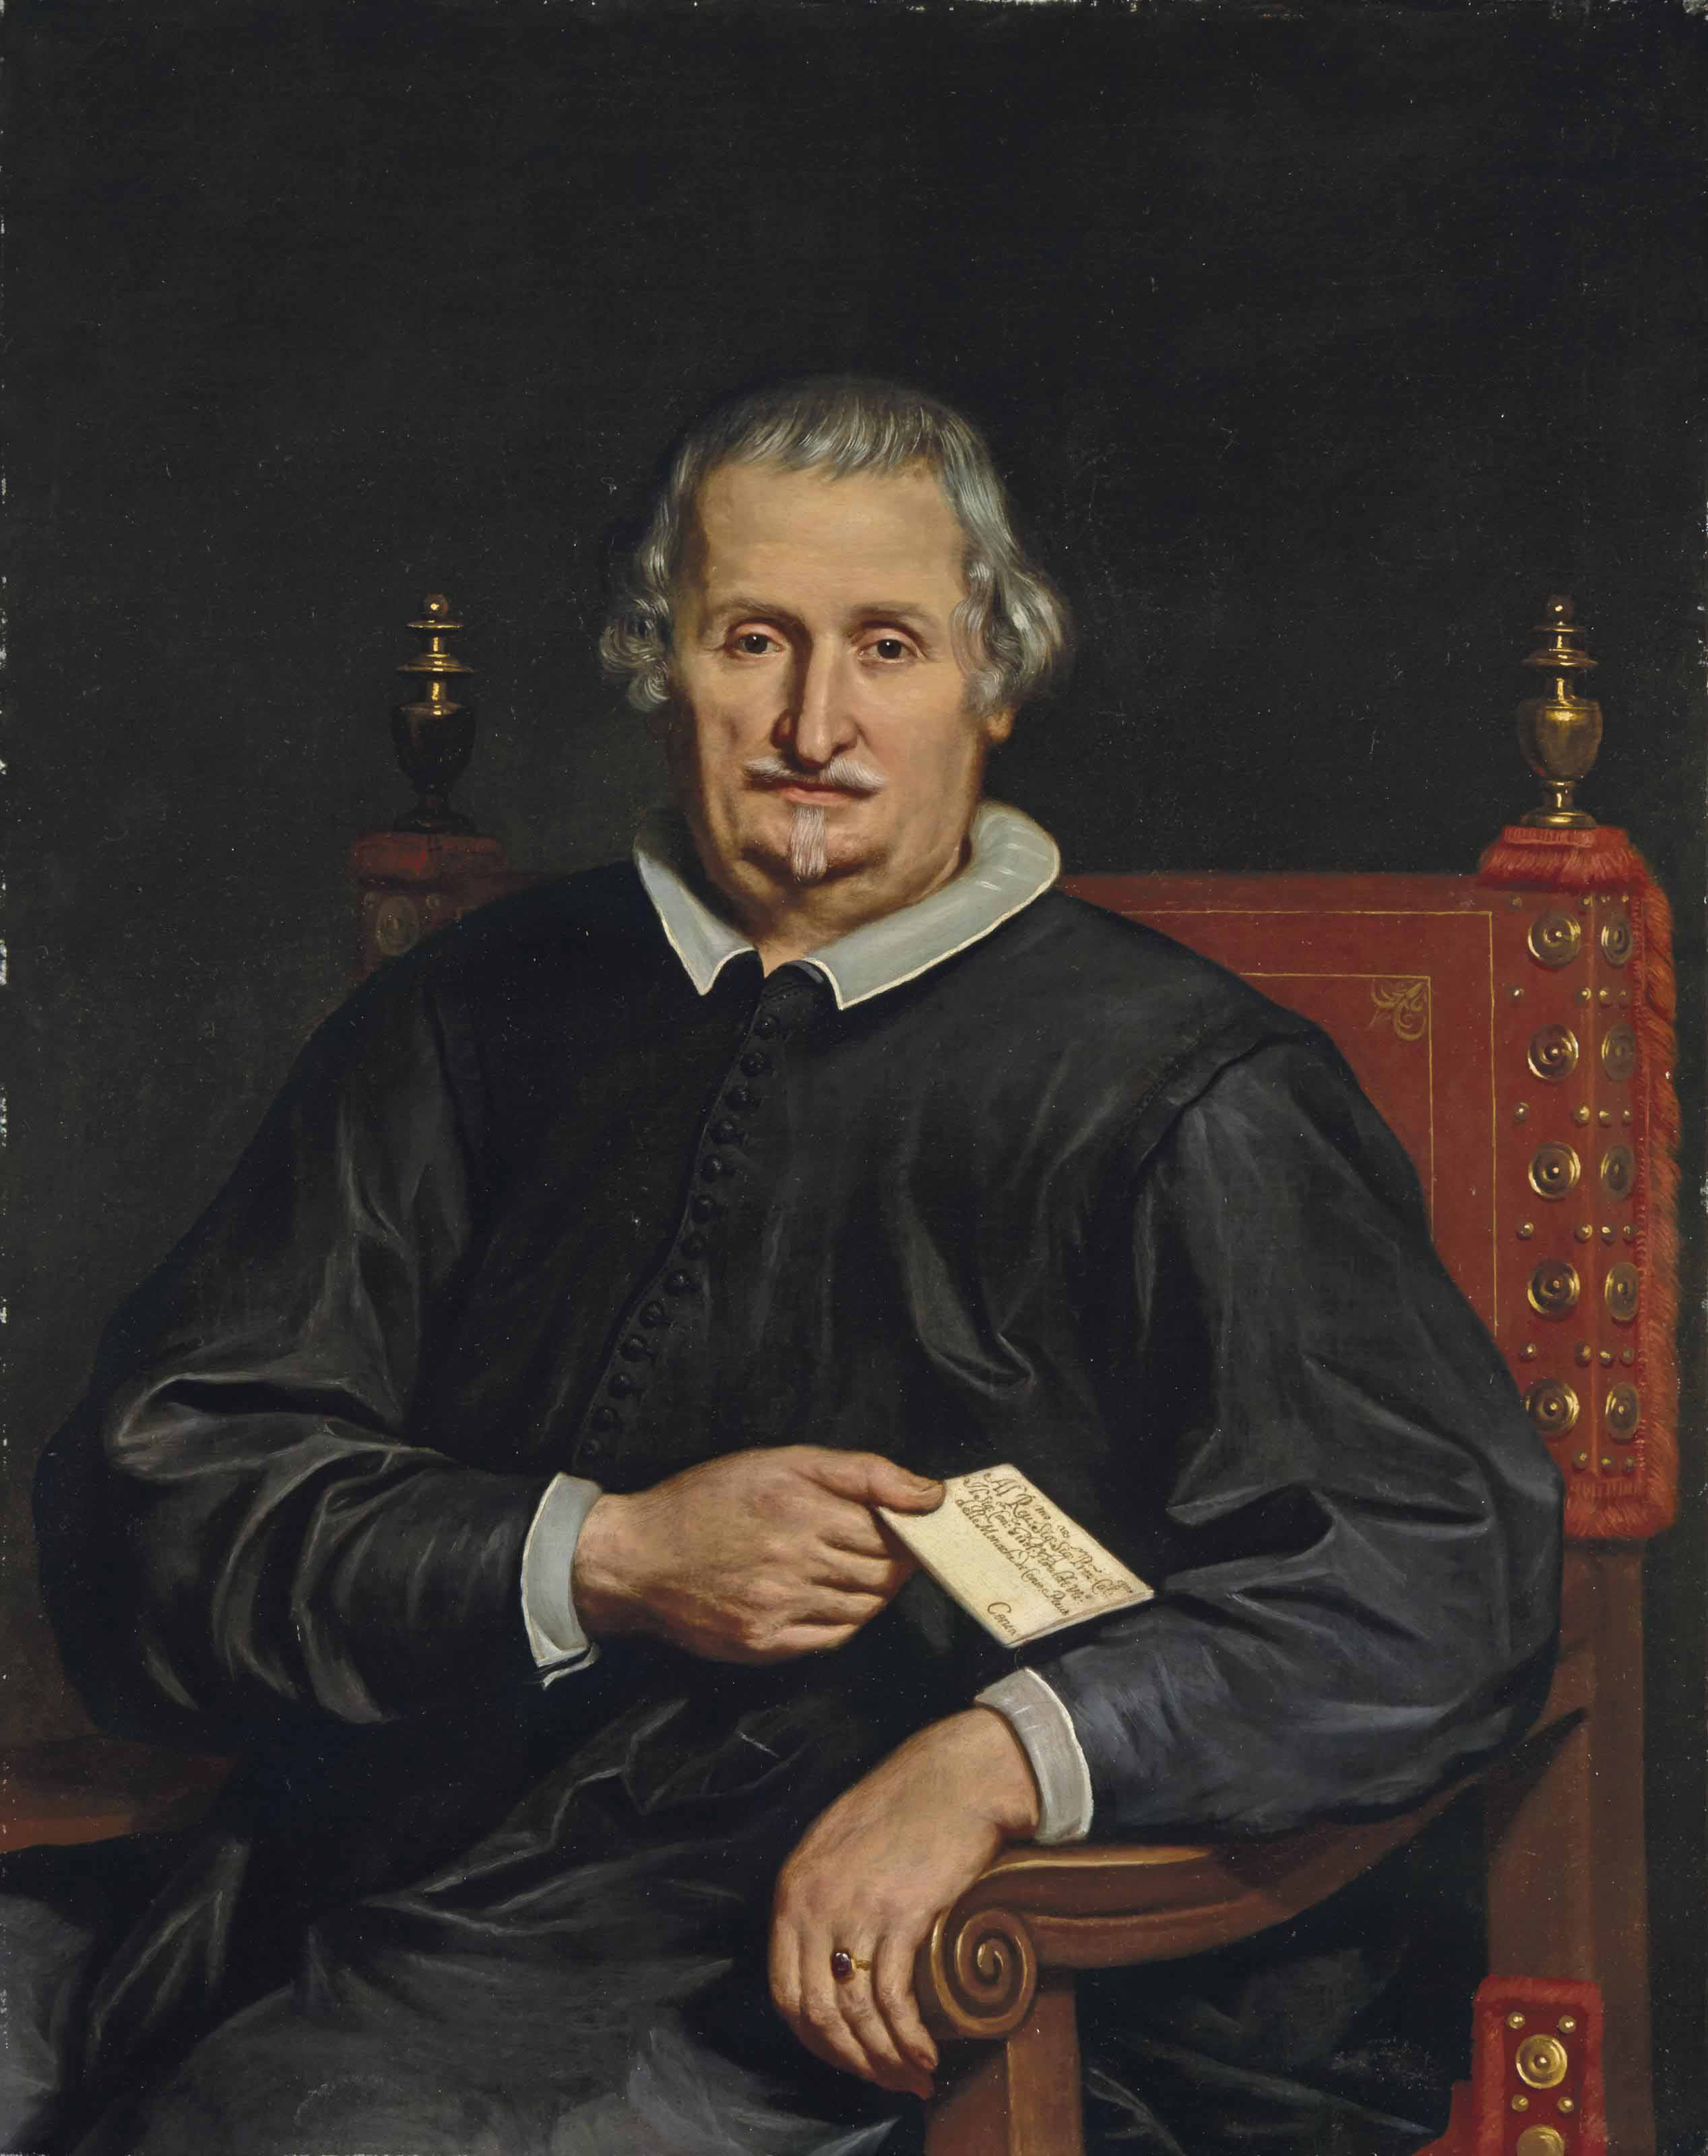 Portrait of a clergyman, half-length, in black robes, holding a letter